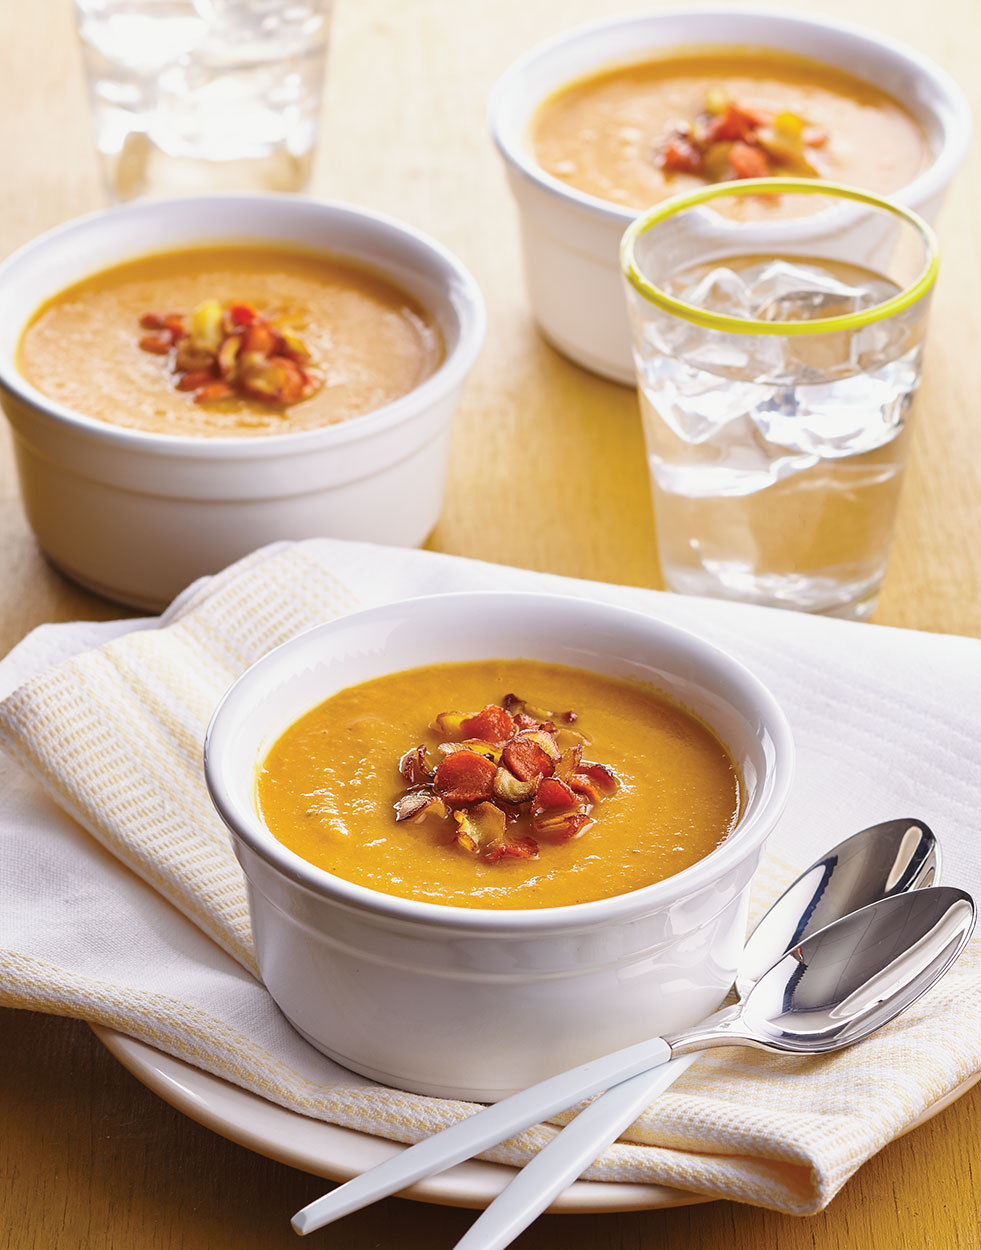 Roasted Carrot Parsnip Soup With Apple